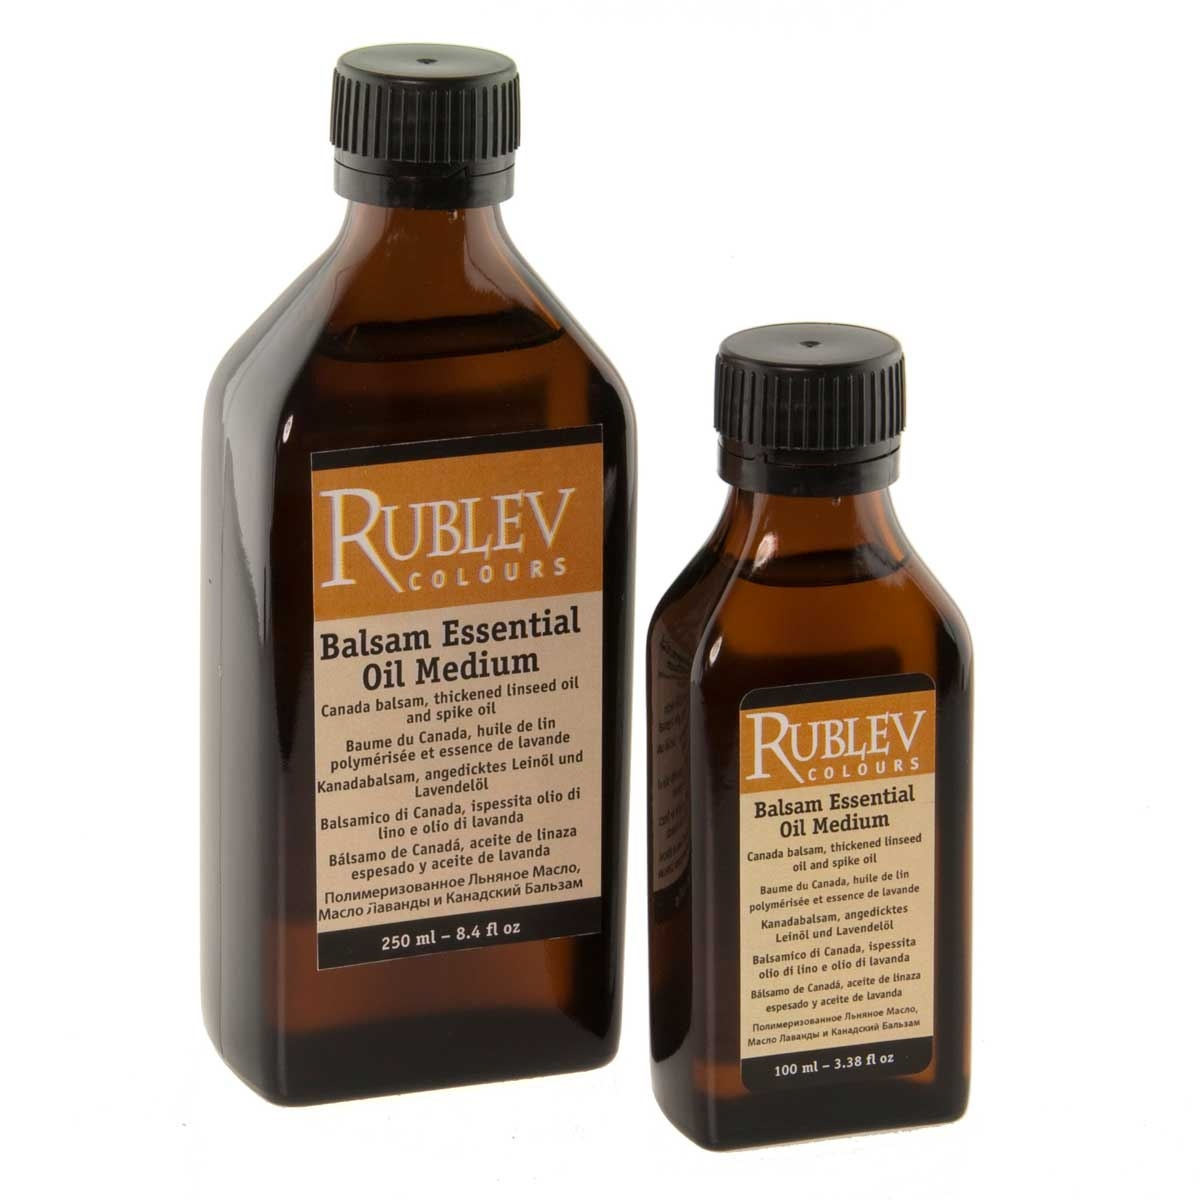 Rublev Colours Balsam Essential Oil Medium